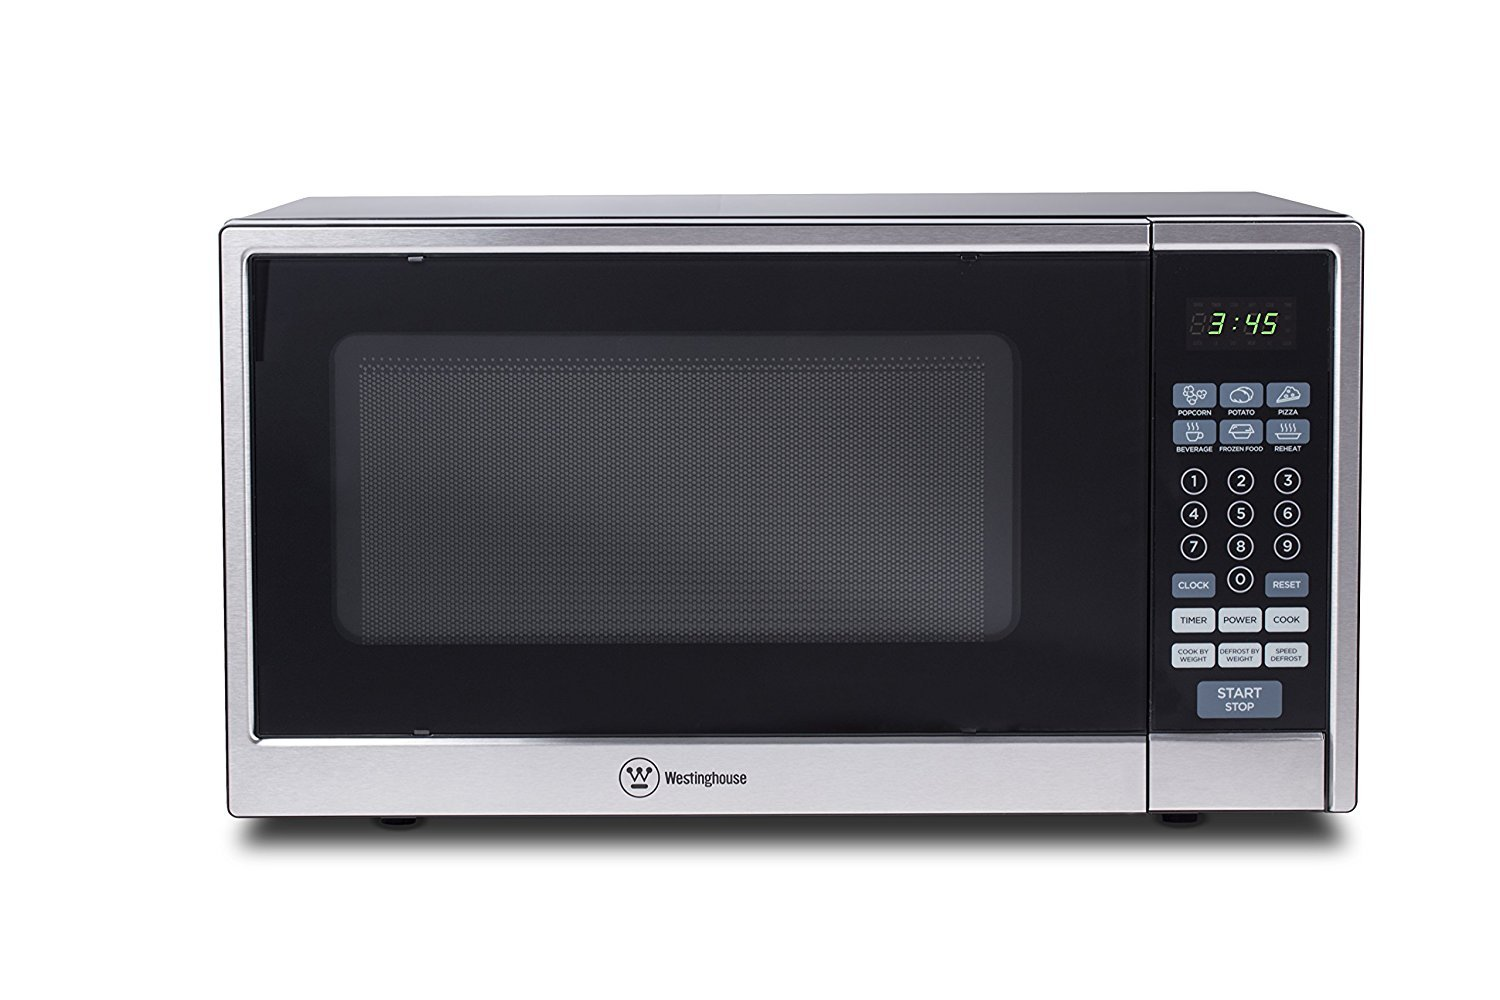 Microwave Oven Compact Countertop Electric Black & Stainless Steel 1000 Watt 1.1 cu. ft. Cookware